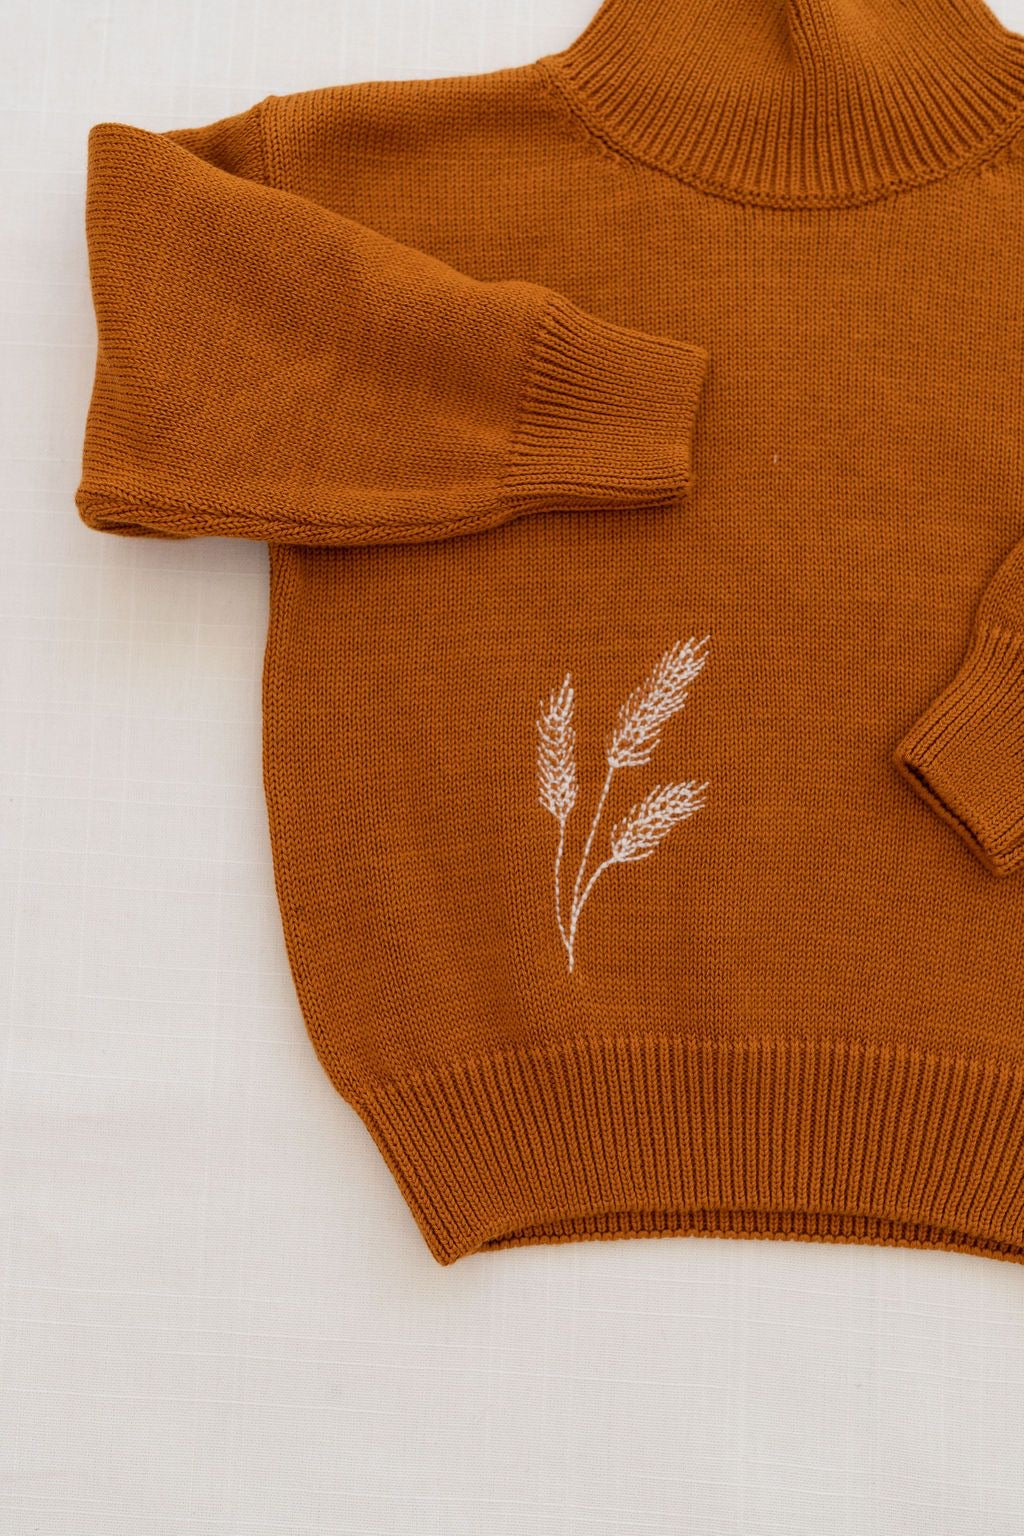 Fin & Vince wheat sweater - curry